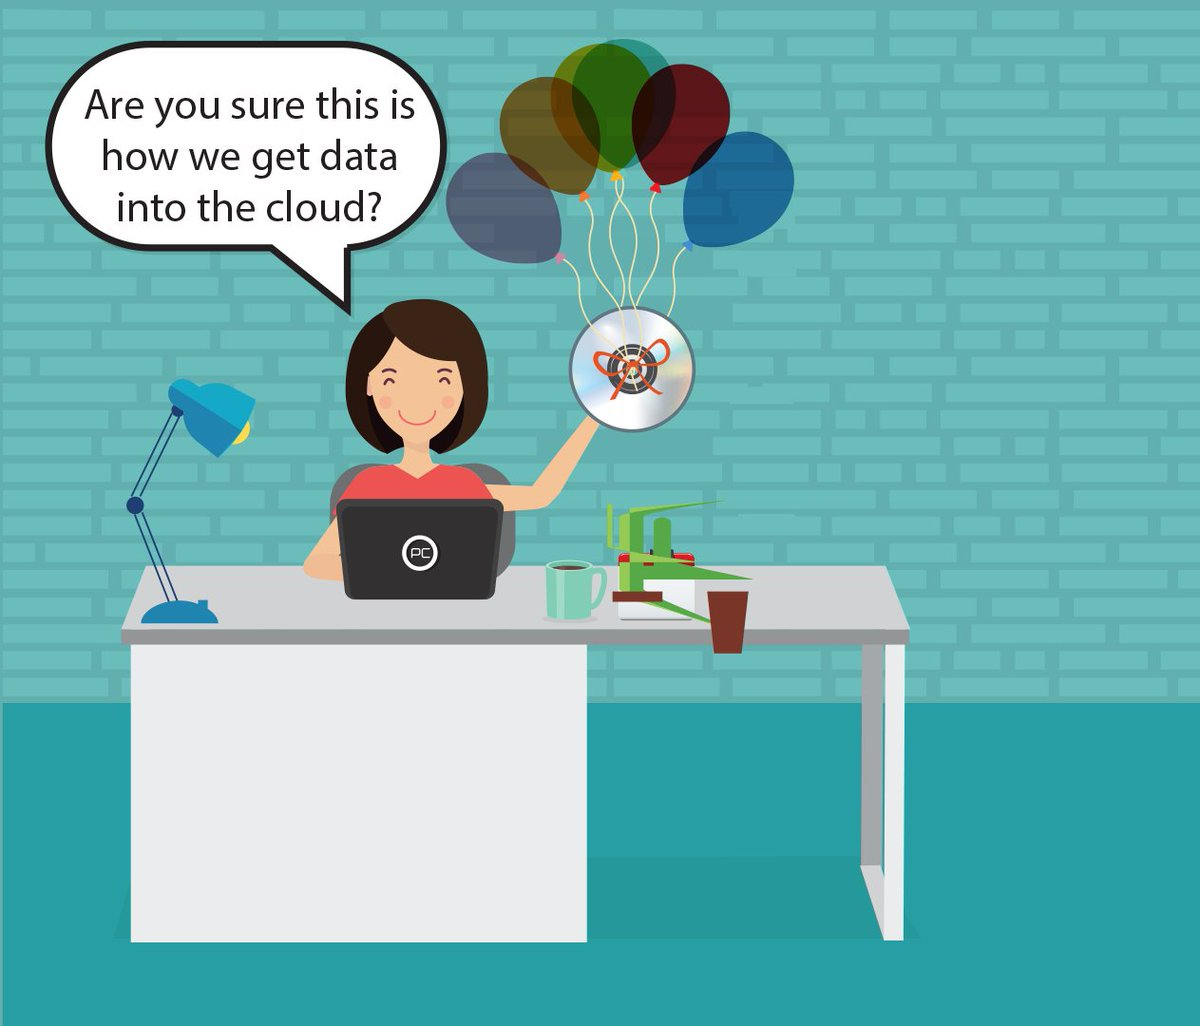 #fridayfunny how data is sent to the cloud #cloud #datatransfer <br>http://pic.twitter.com/1cyiPBLGQW